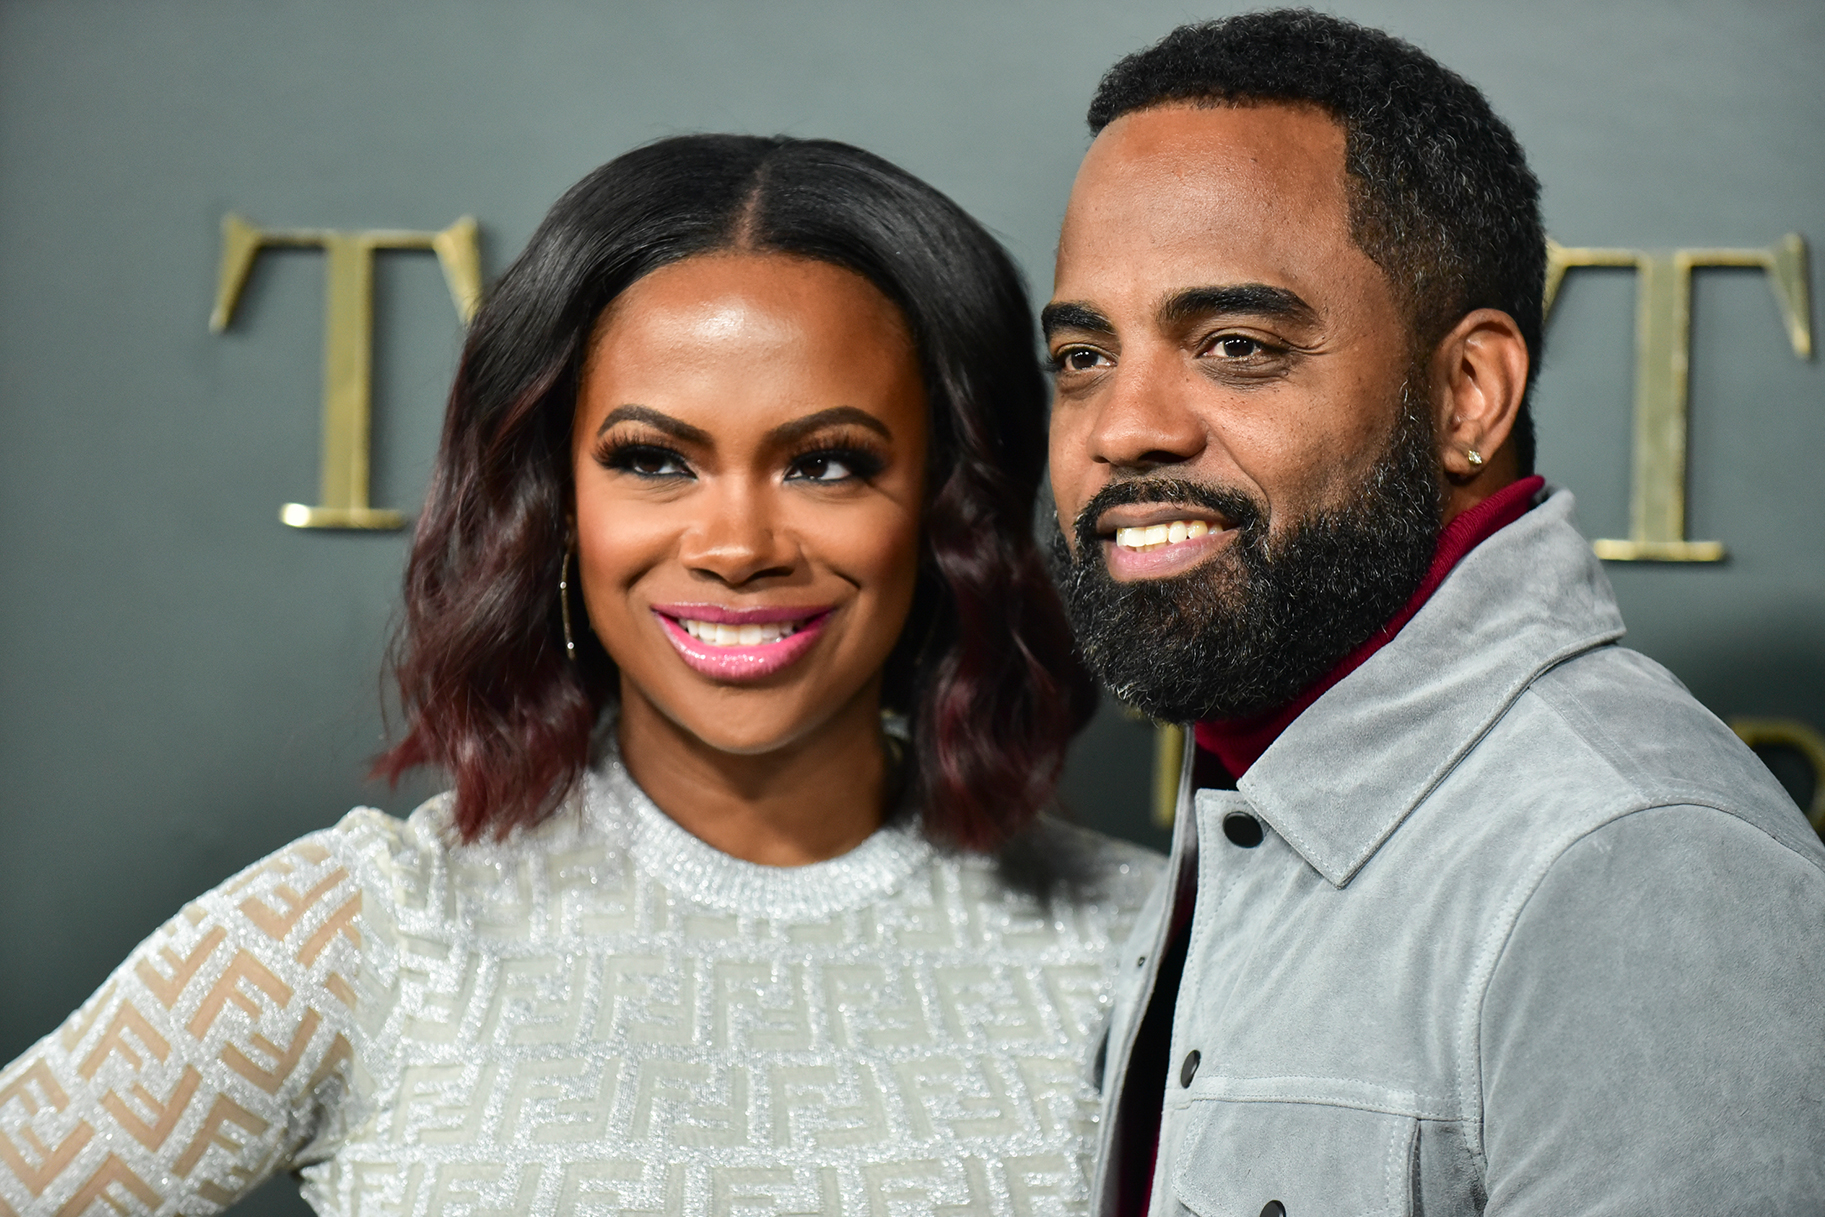 kandi-burruss-impresses-fans-with-some-pics-featuring-her-grandma-check-them-out-here